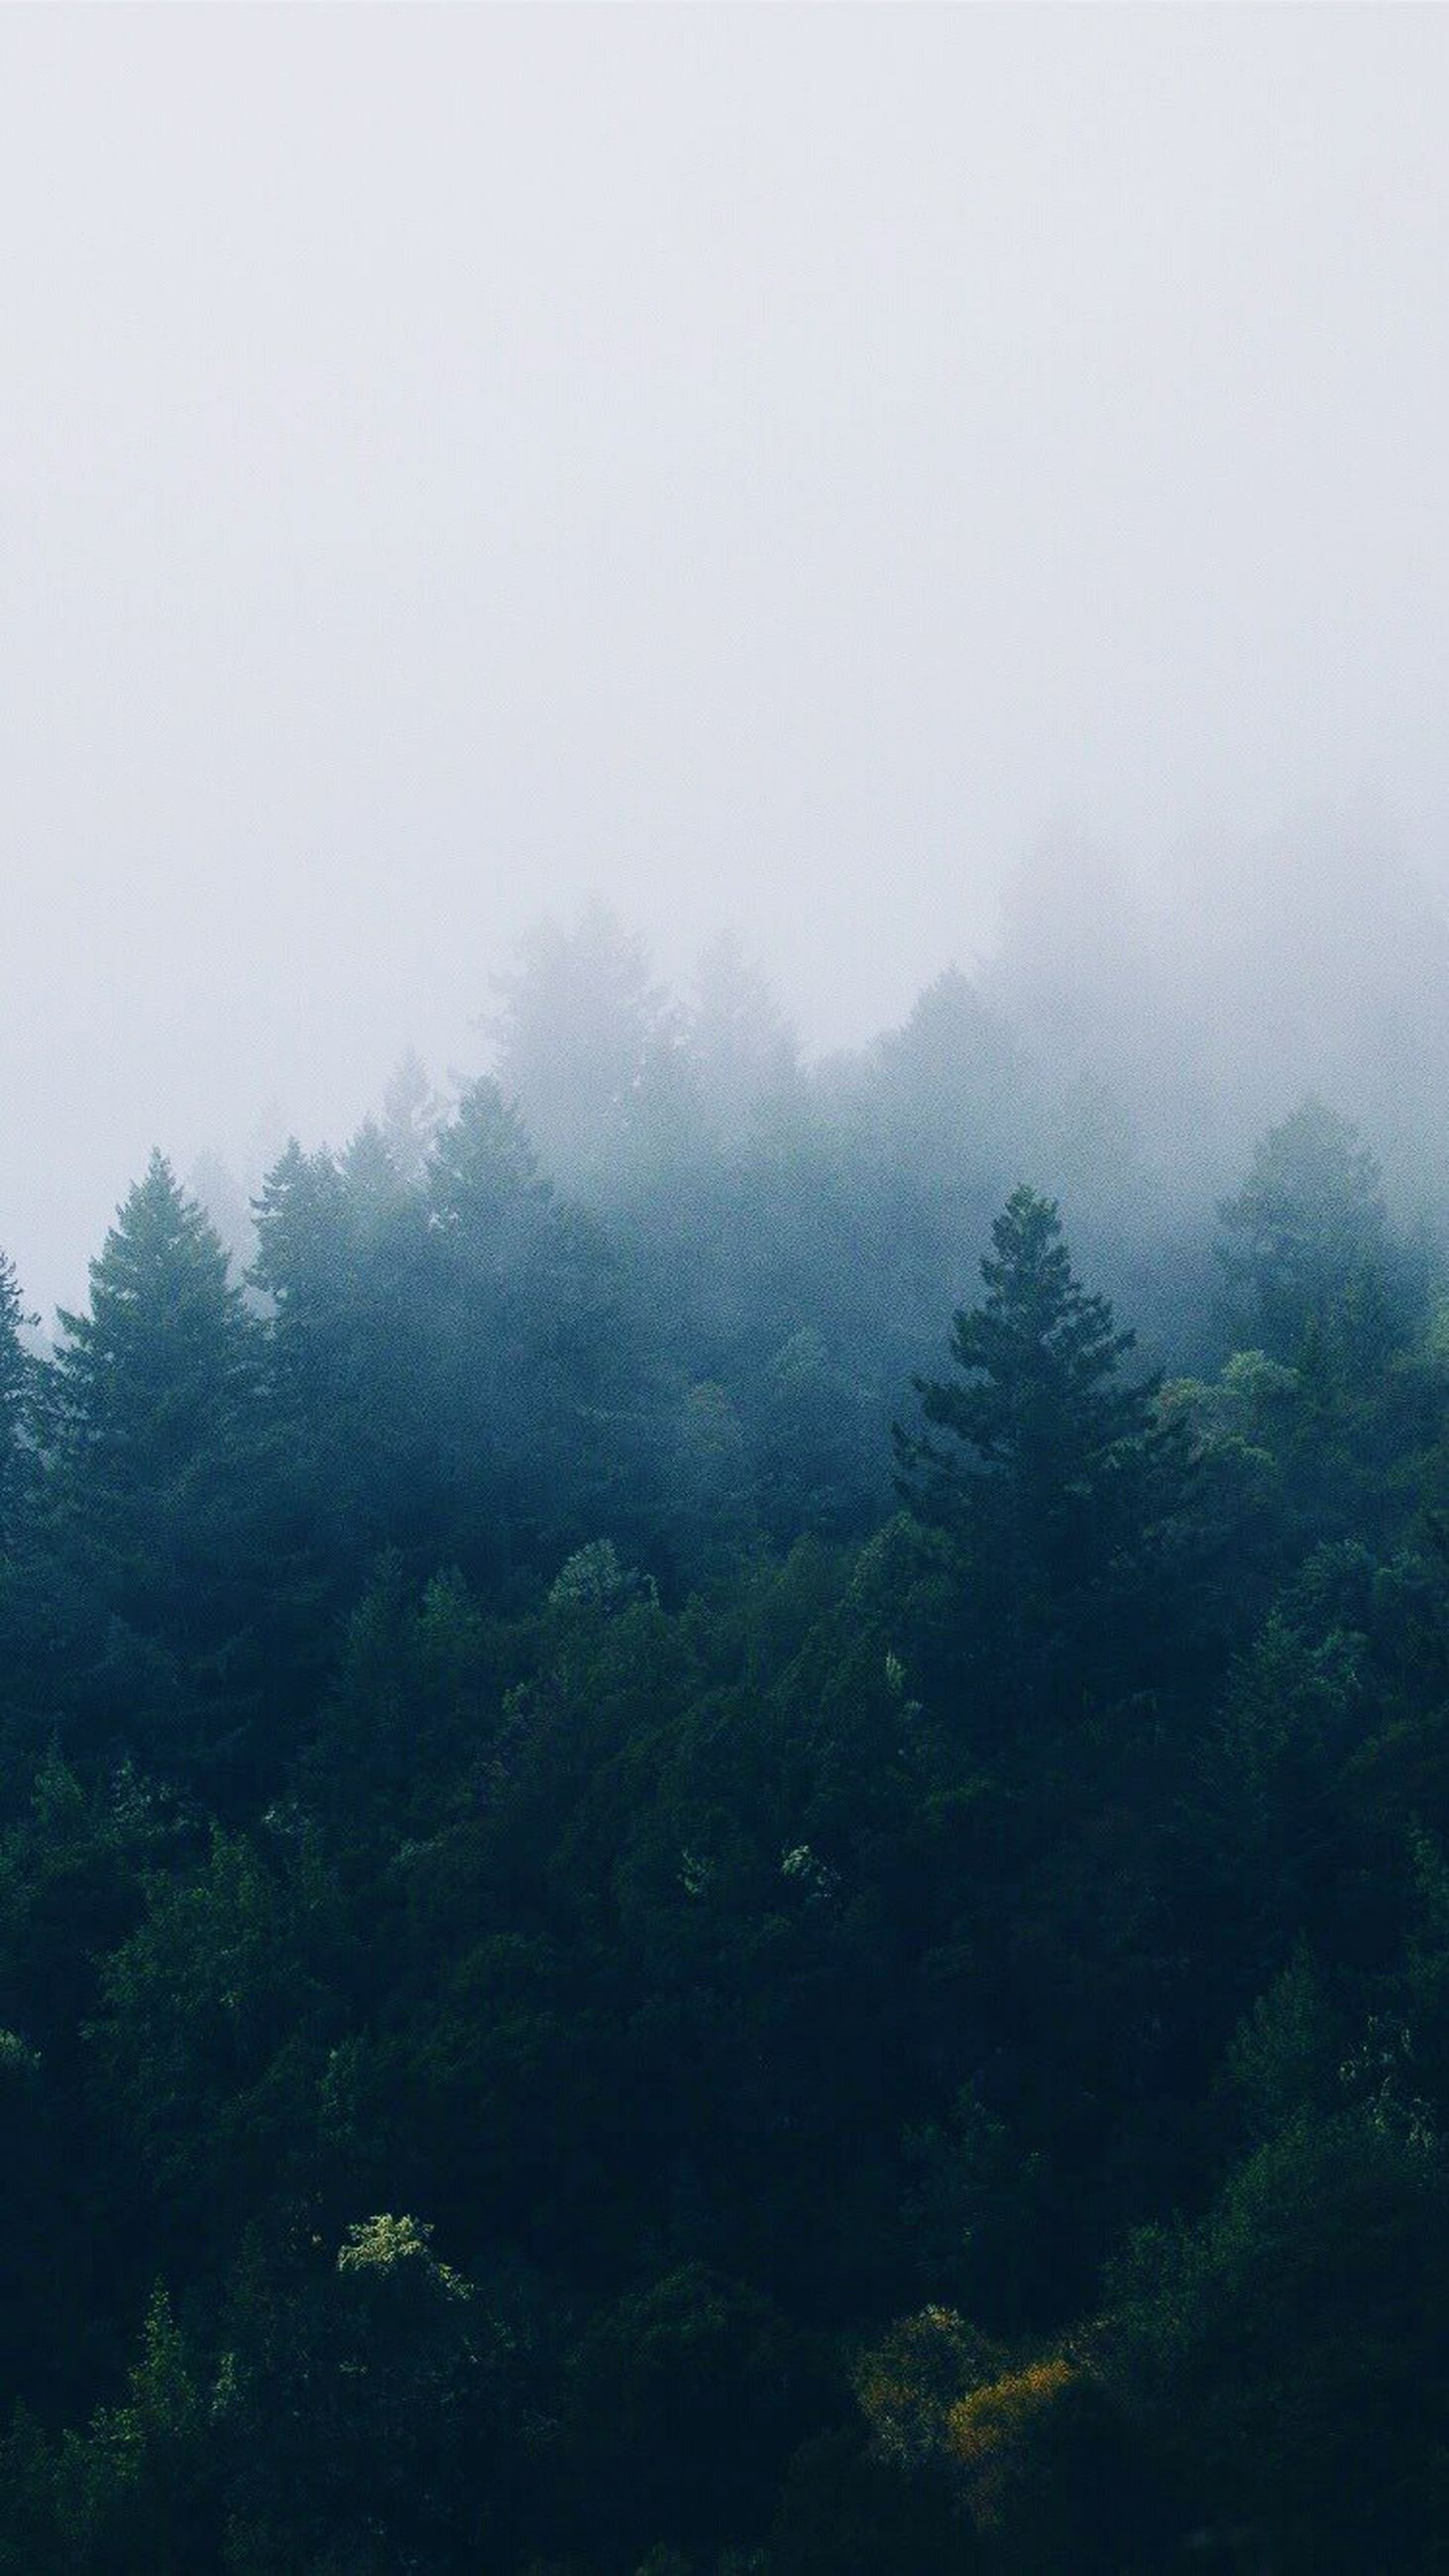 tree, nature, beauty in nature, sky, no people, growth, forest, outdoors, day, lush - description